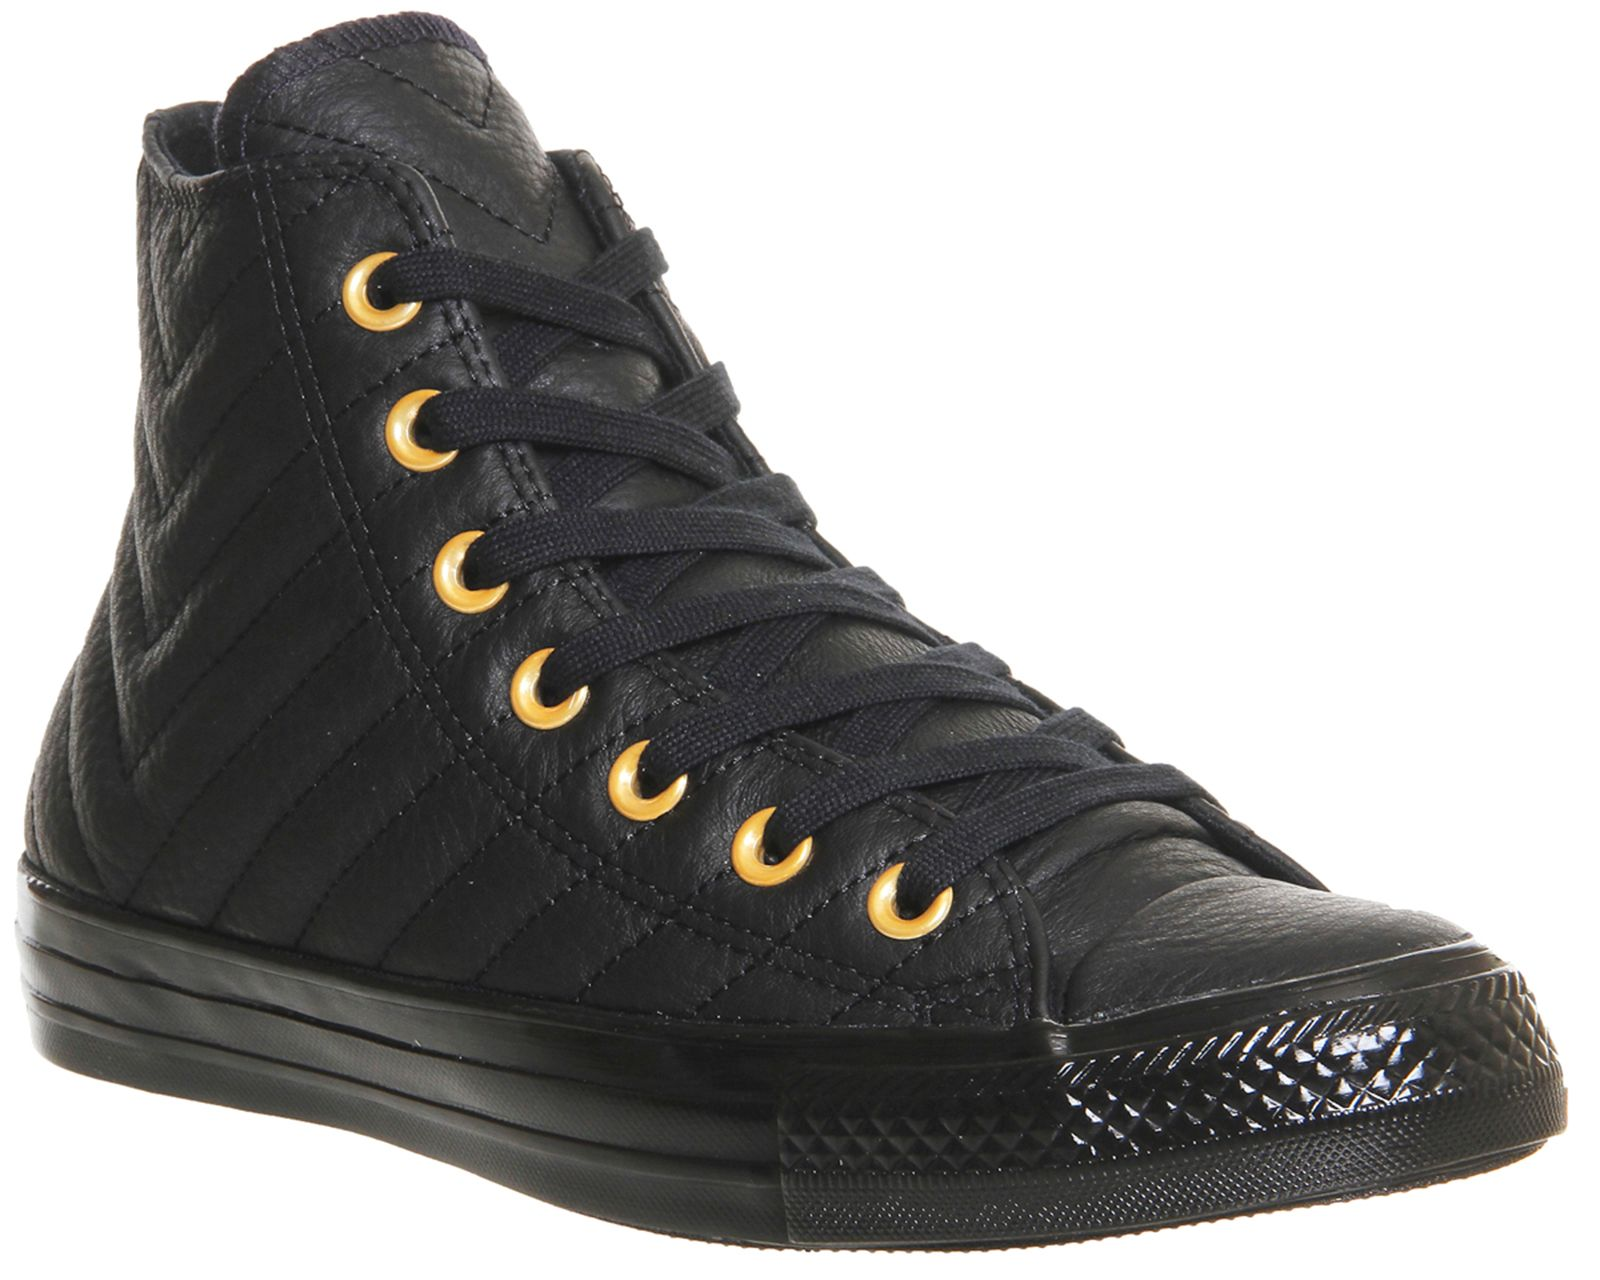 Converse All star hi leather trainers Black Gold